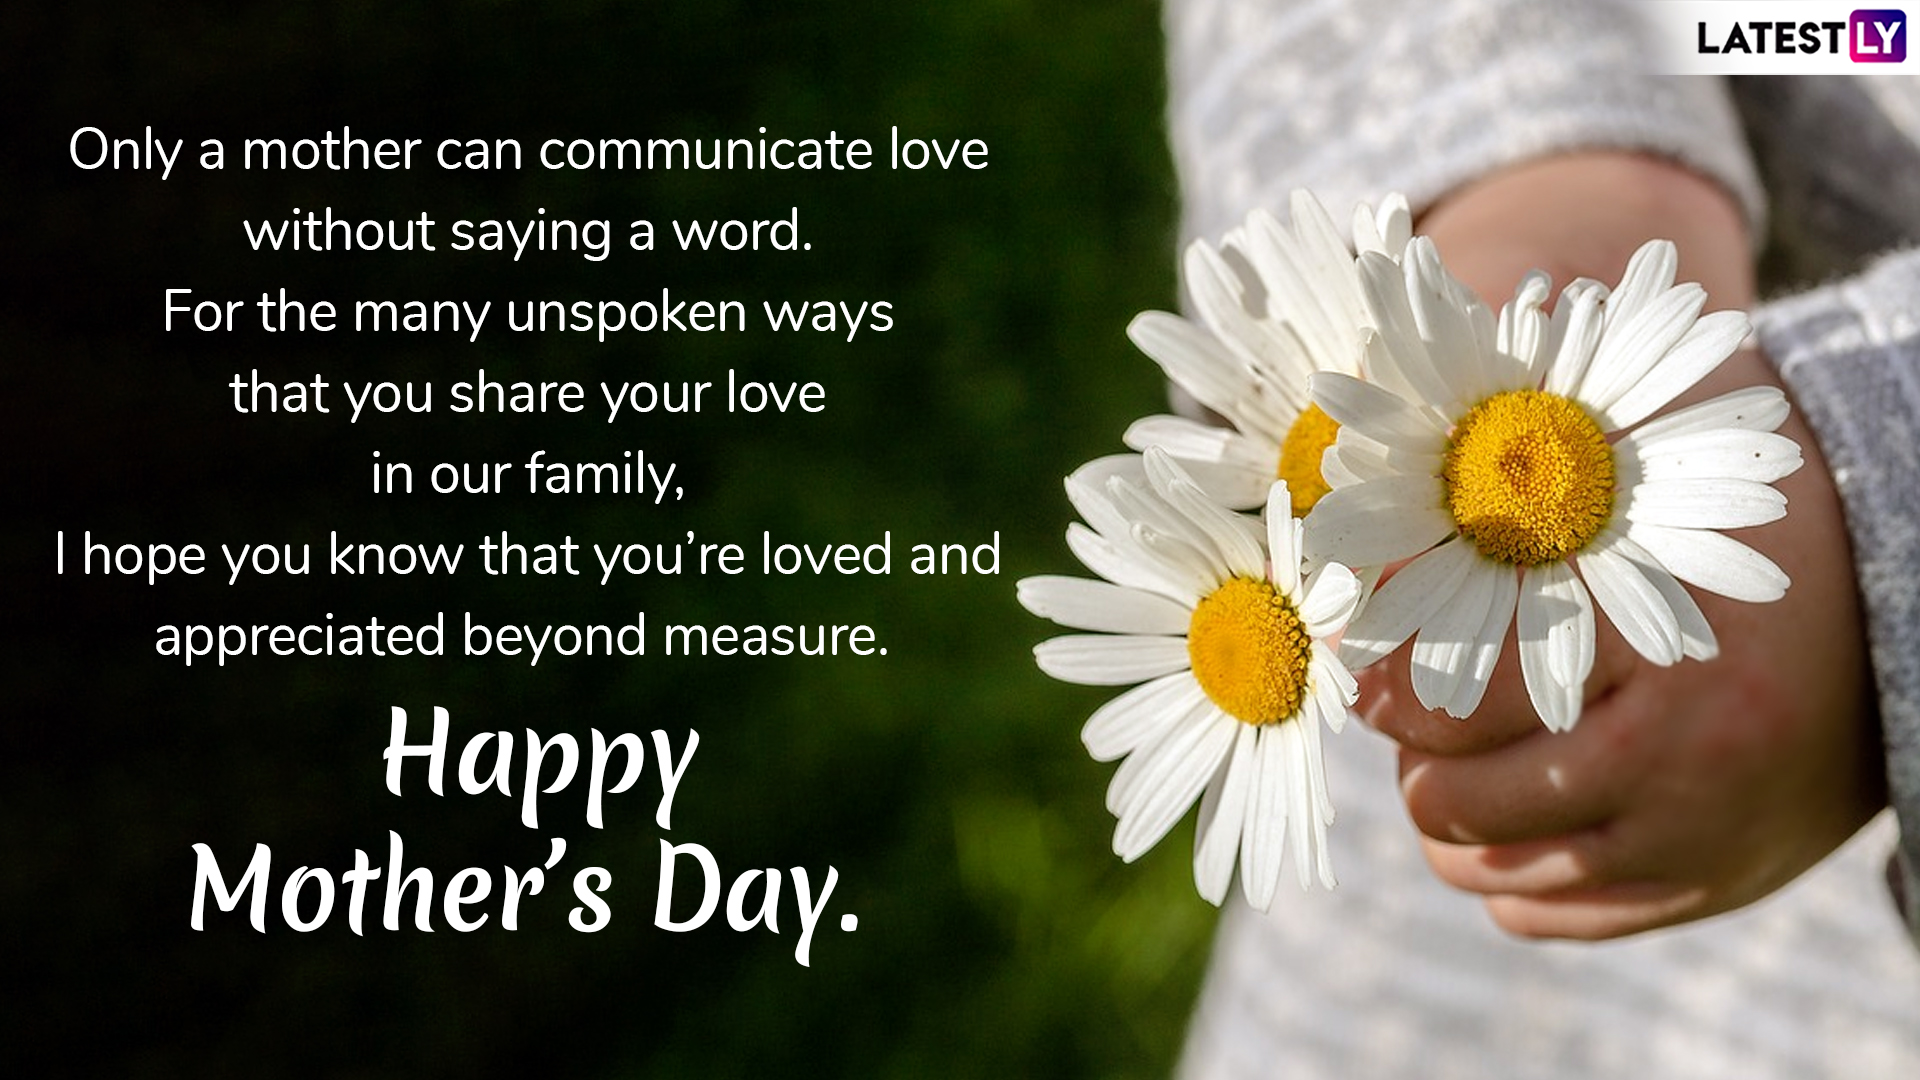 Happy Mothers Day 2019 Greetings WhatsApp Stickers SMS 1920x1080